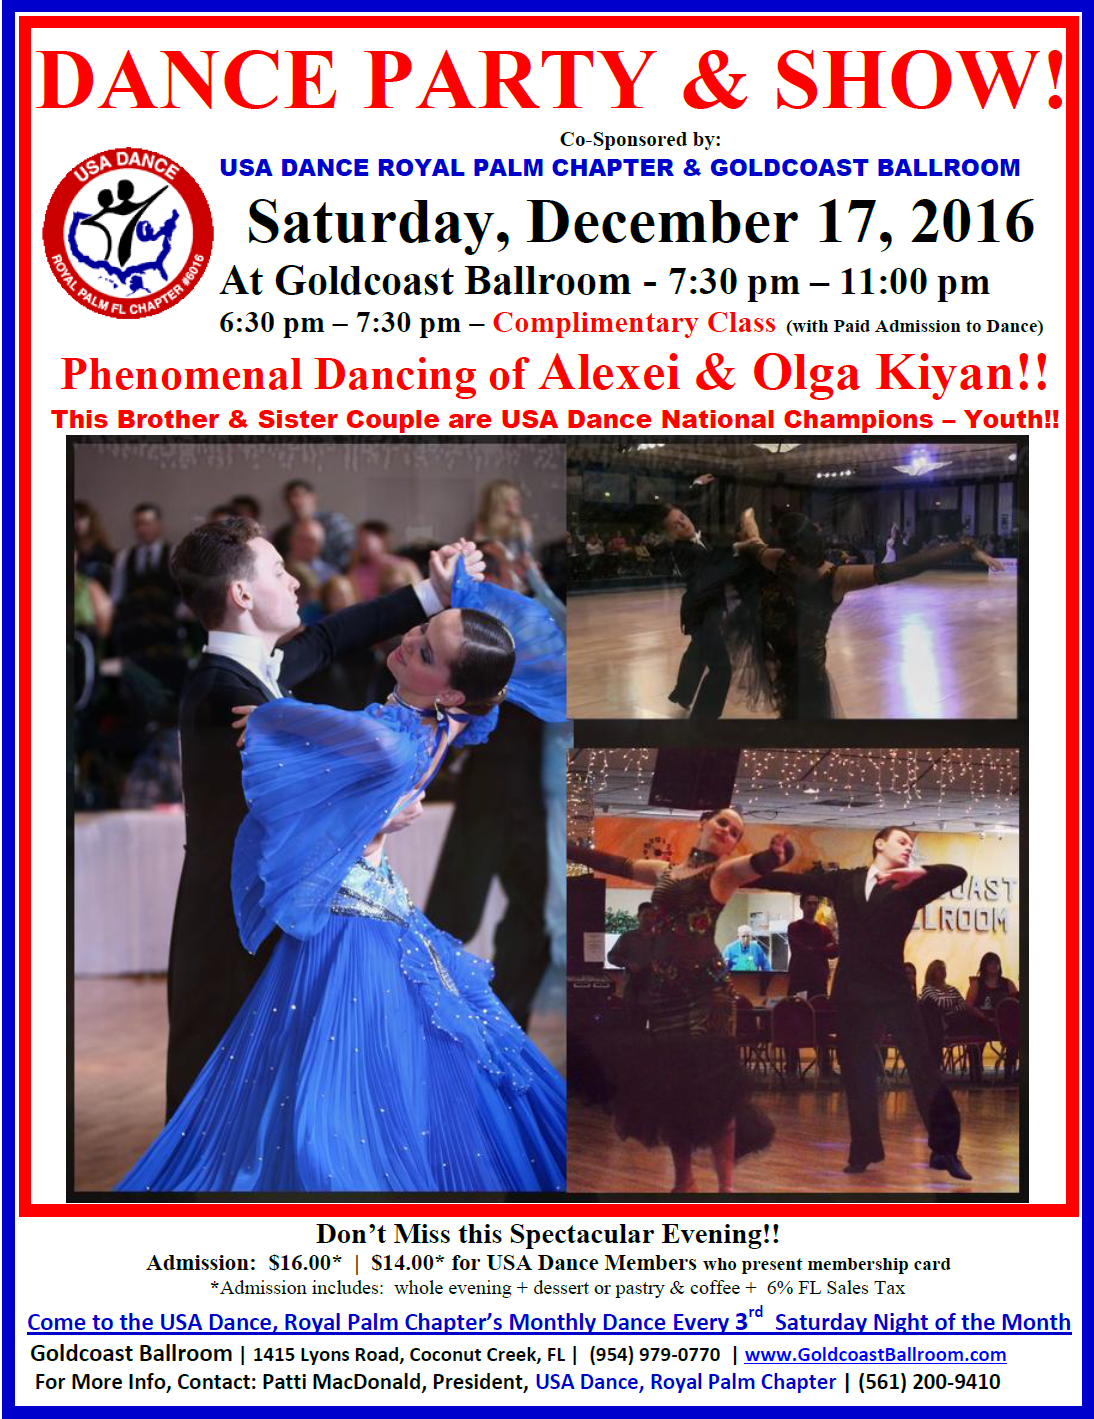 Click Here to Print Flyer:  Alexei & Olga Kiyan - Spectacular Show At USA Dance Night Party & Show -  December 17, 2016!